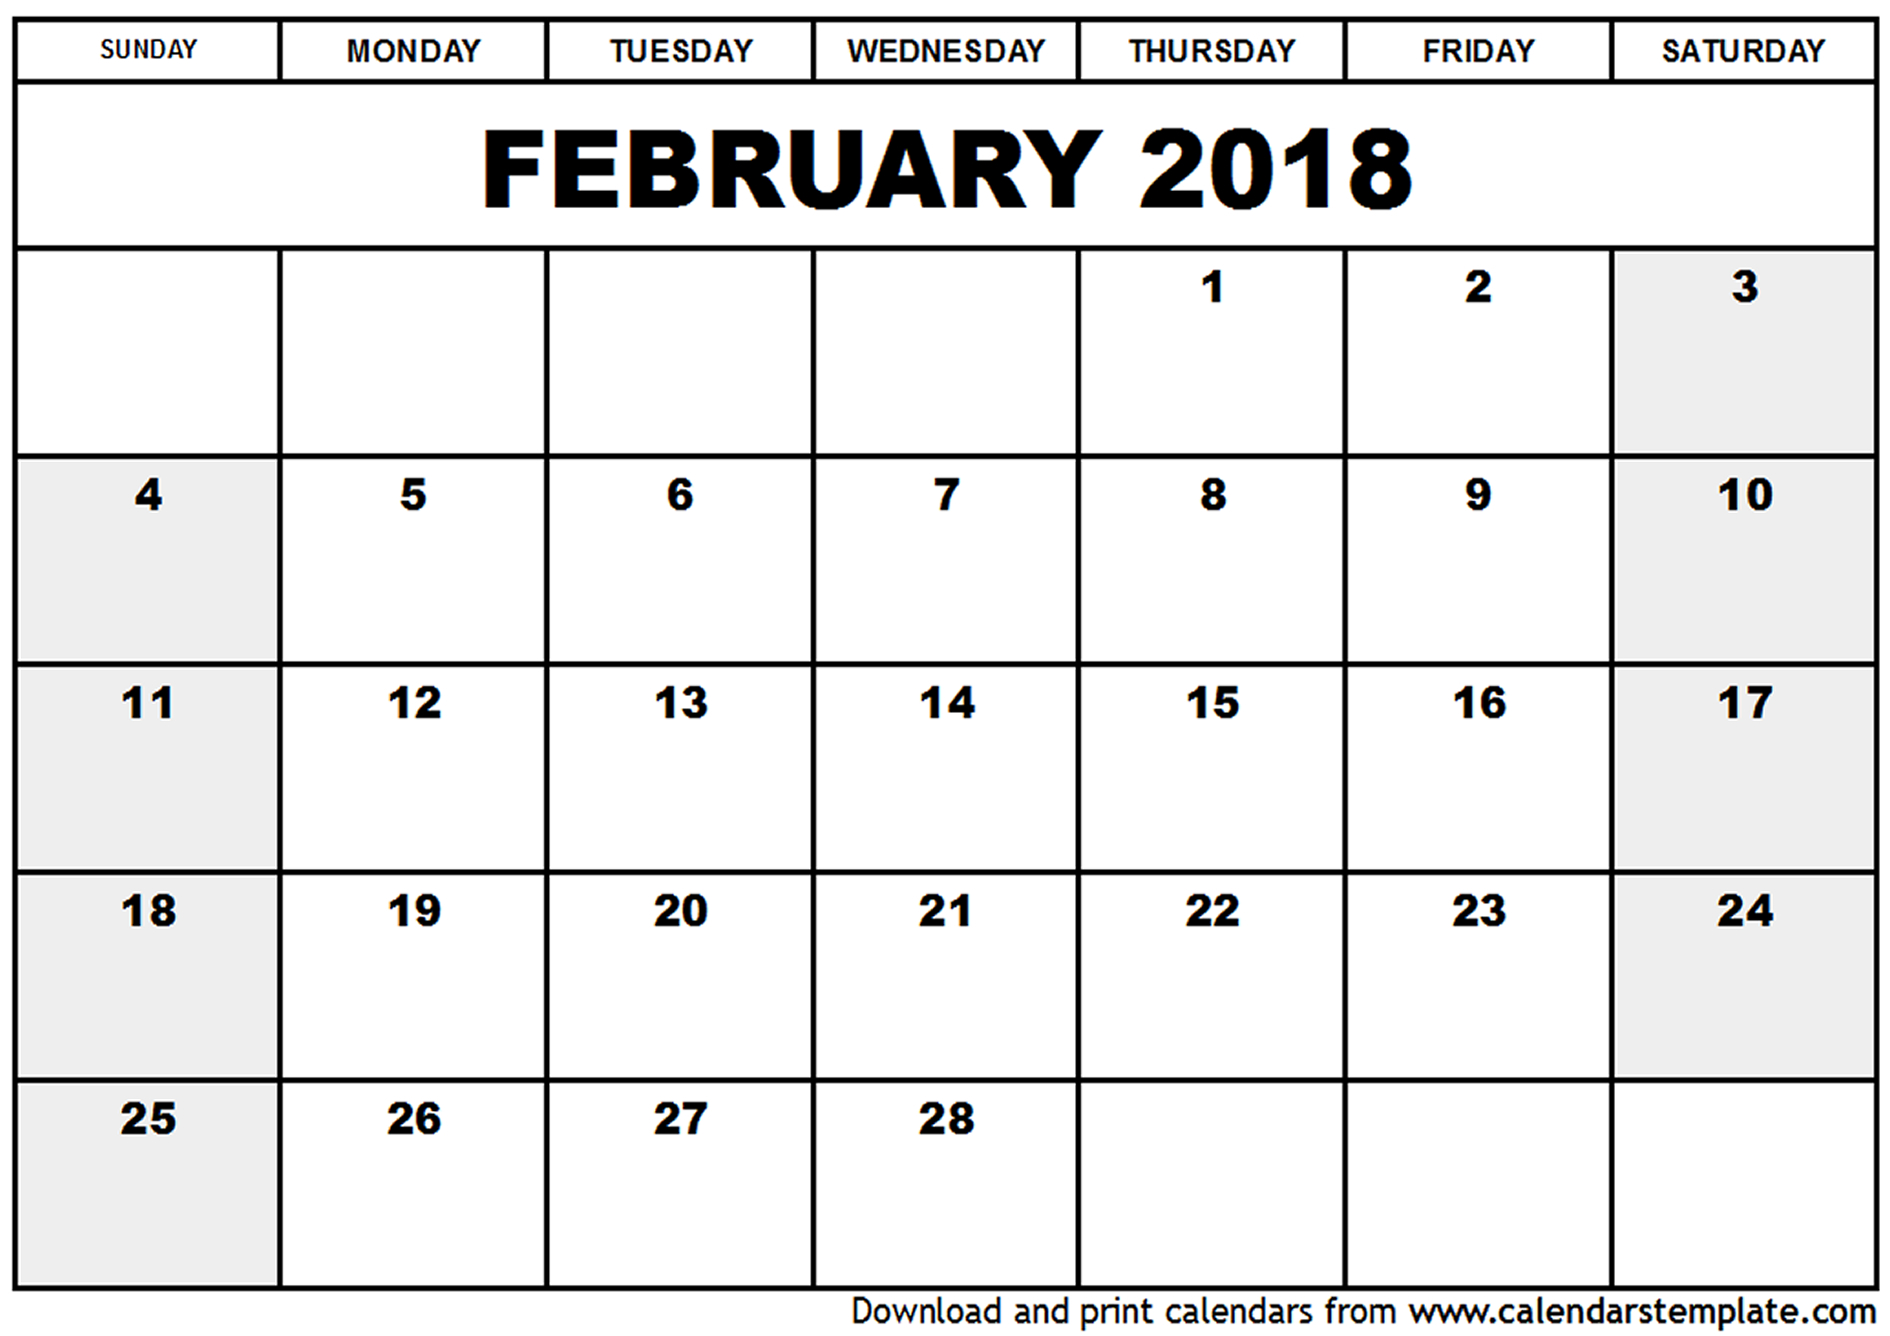 February 2018 Calendar | monthly calendar template